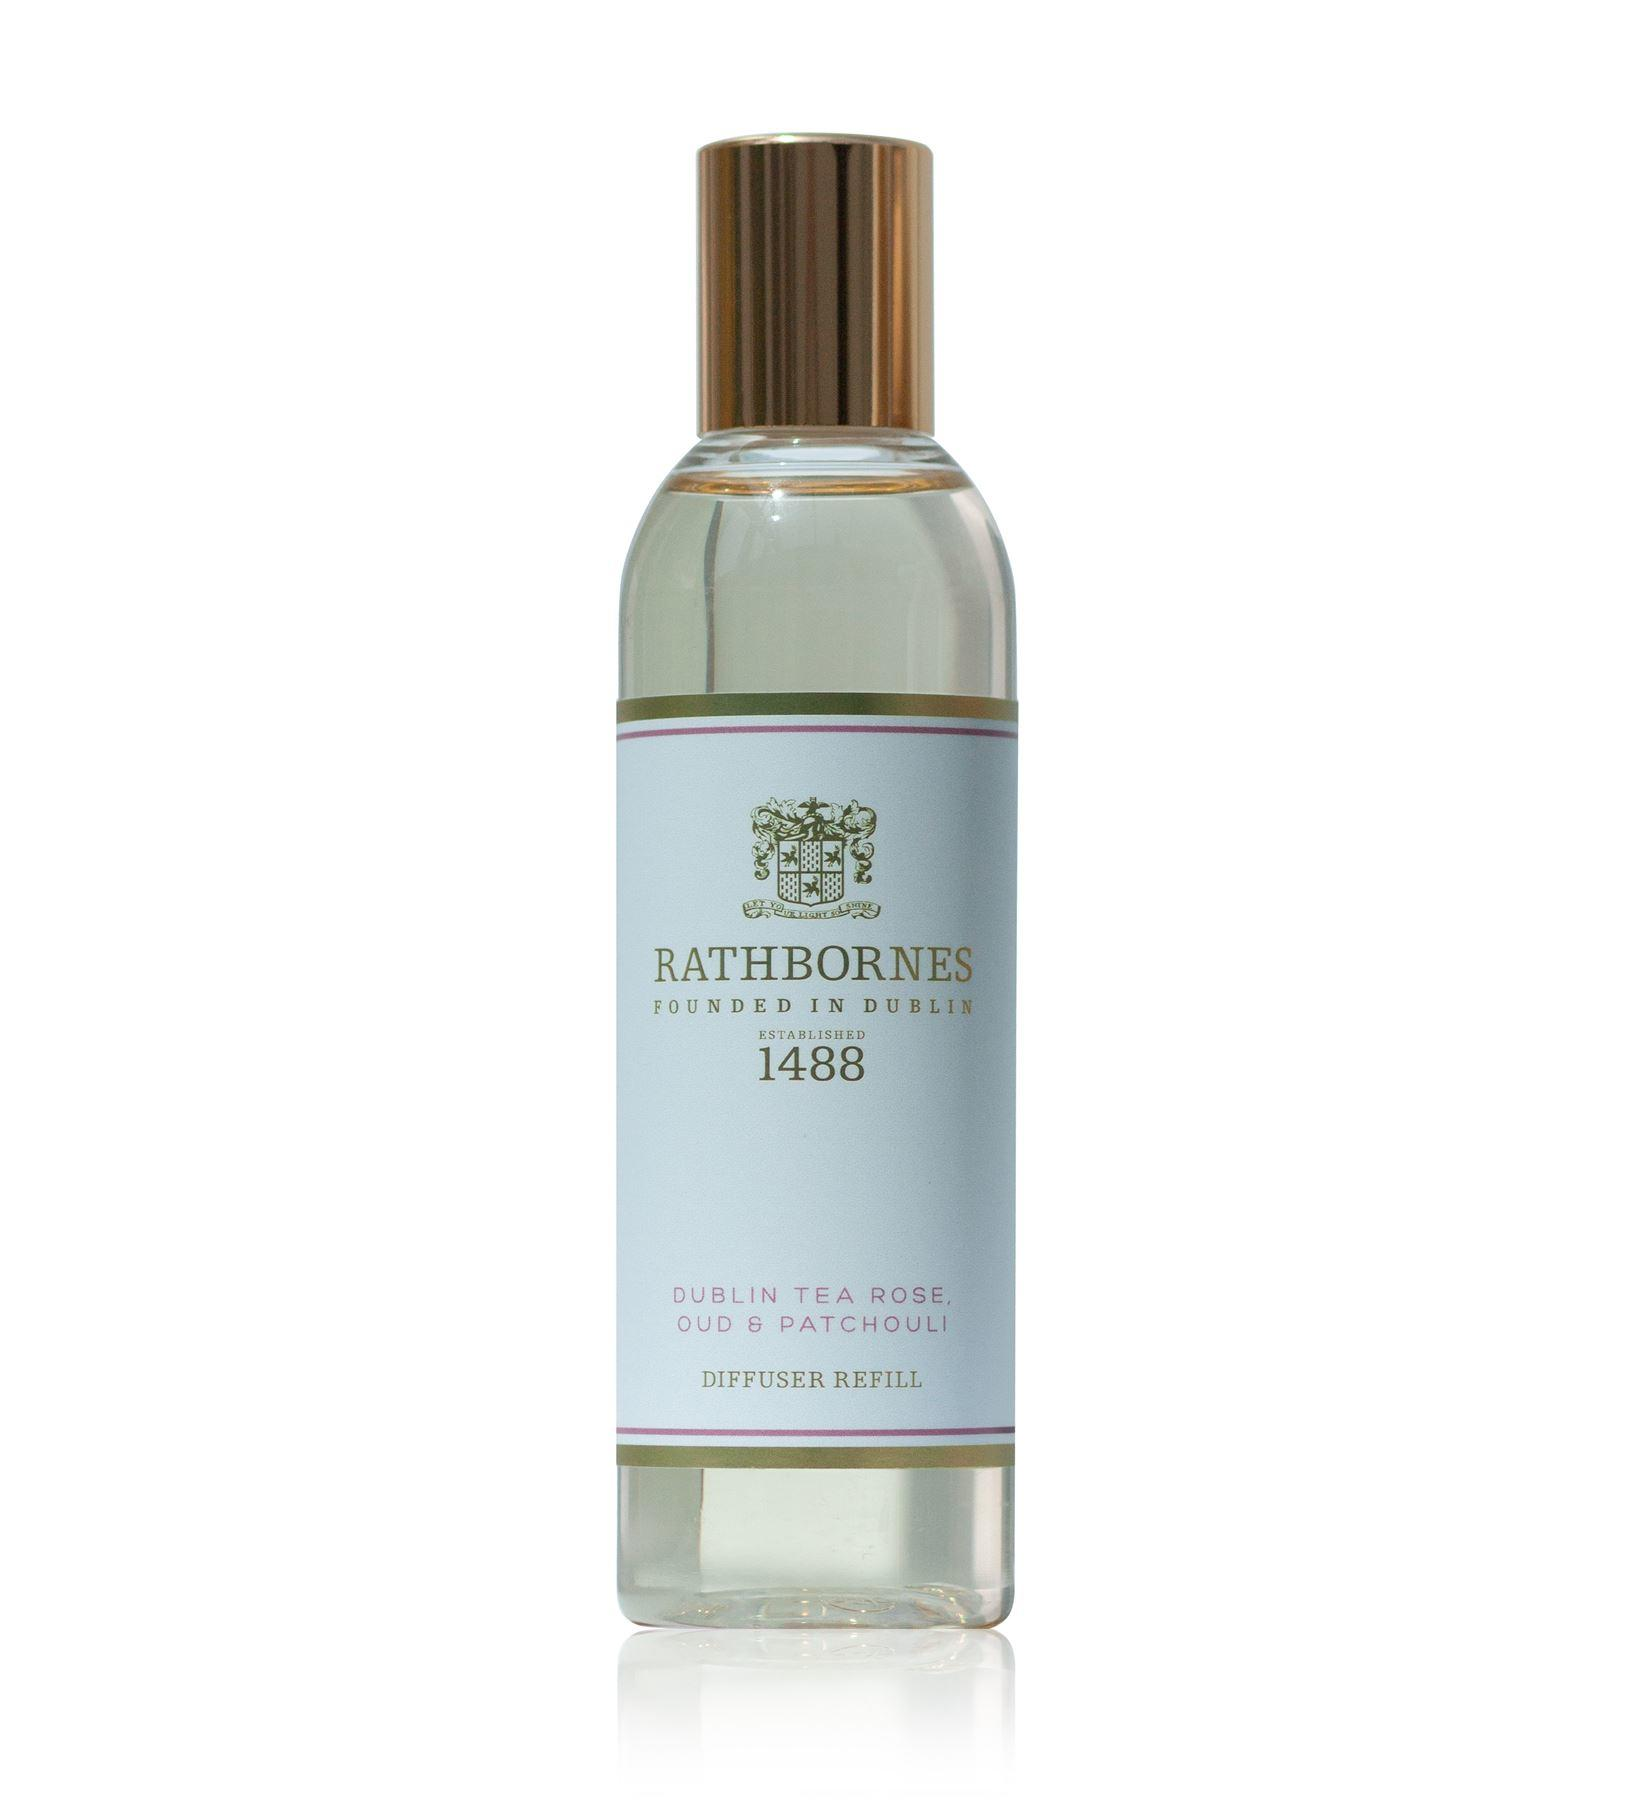 Rathbornes 1488 Dublin Tea Rose, Oud & Patchouli Reed Diffuser Refill Oil